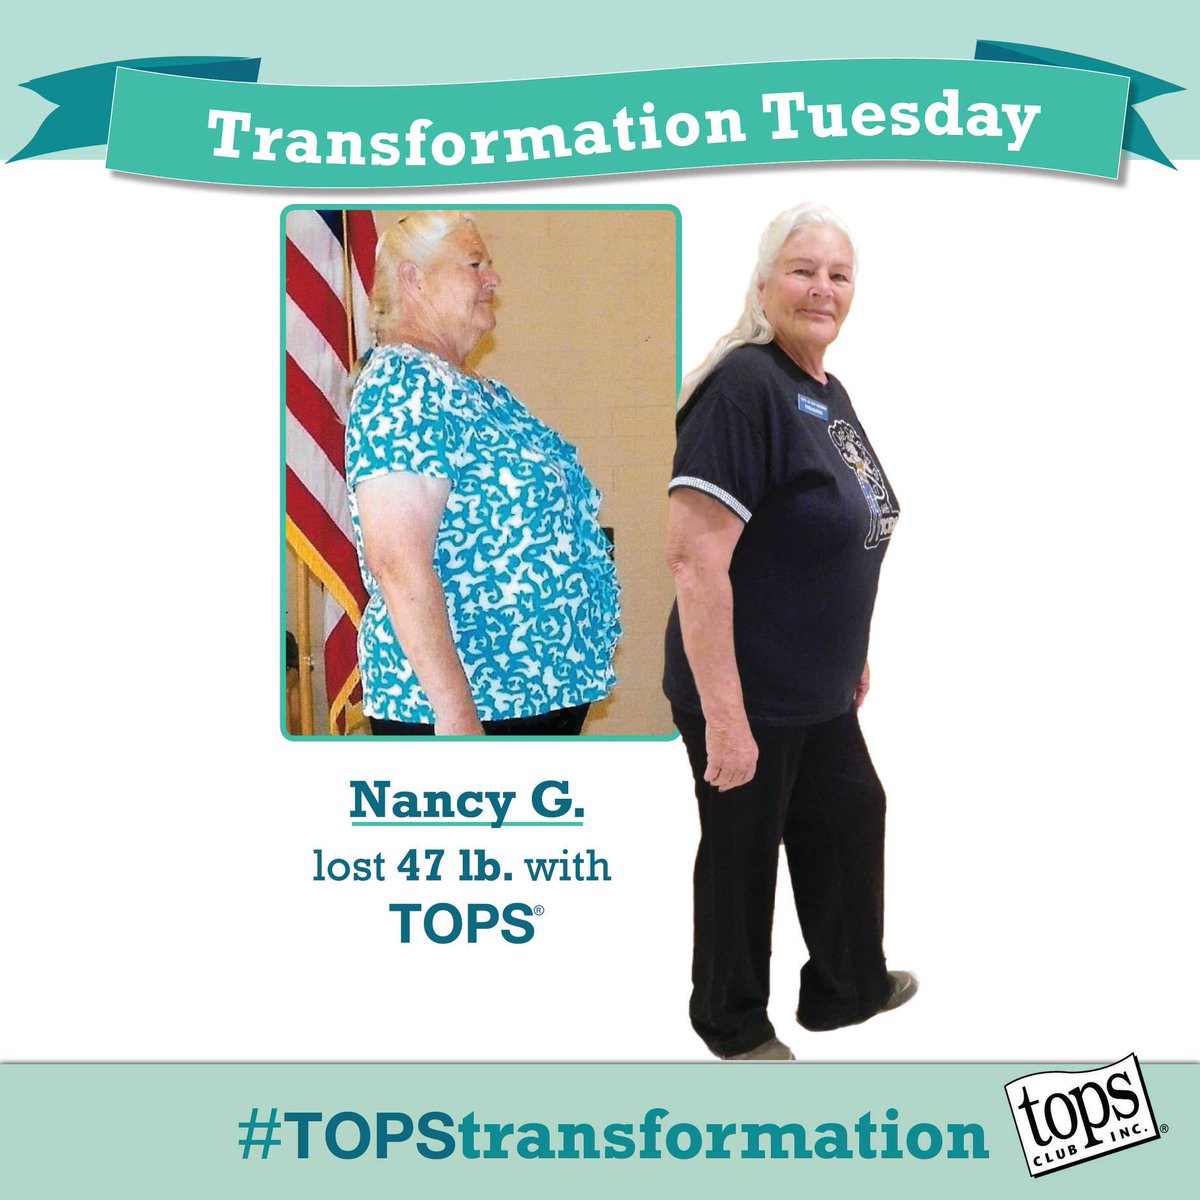 Tops Club On Twitter The Difference Is Real Nancy Lost Nearly 50 Pounds With Tops For More Information About Our Weightloss Support Check Out Https T Co U2s3omzry2 Transformationtuesday Https T Co Xy8ghaxun0